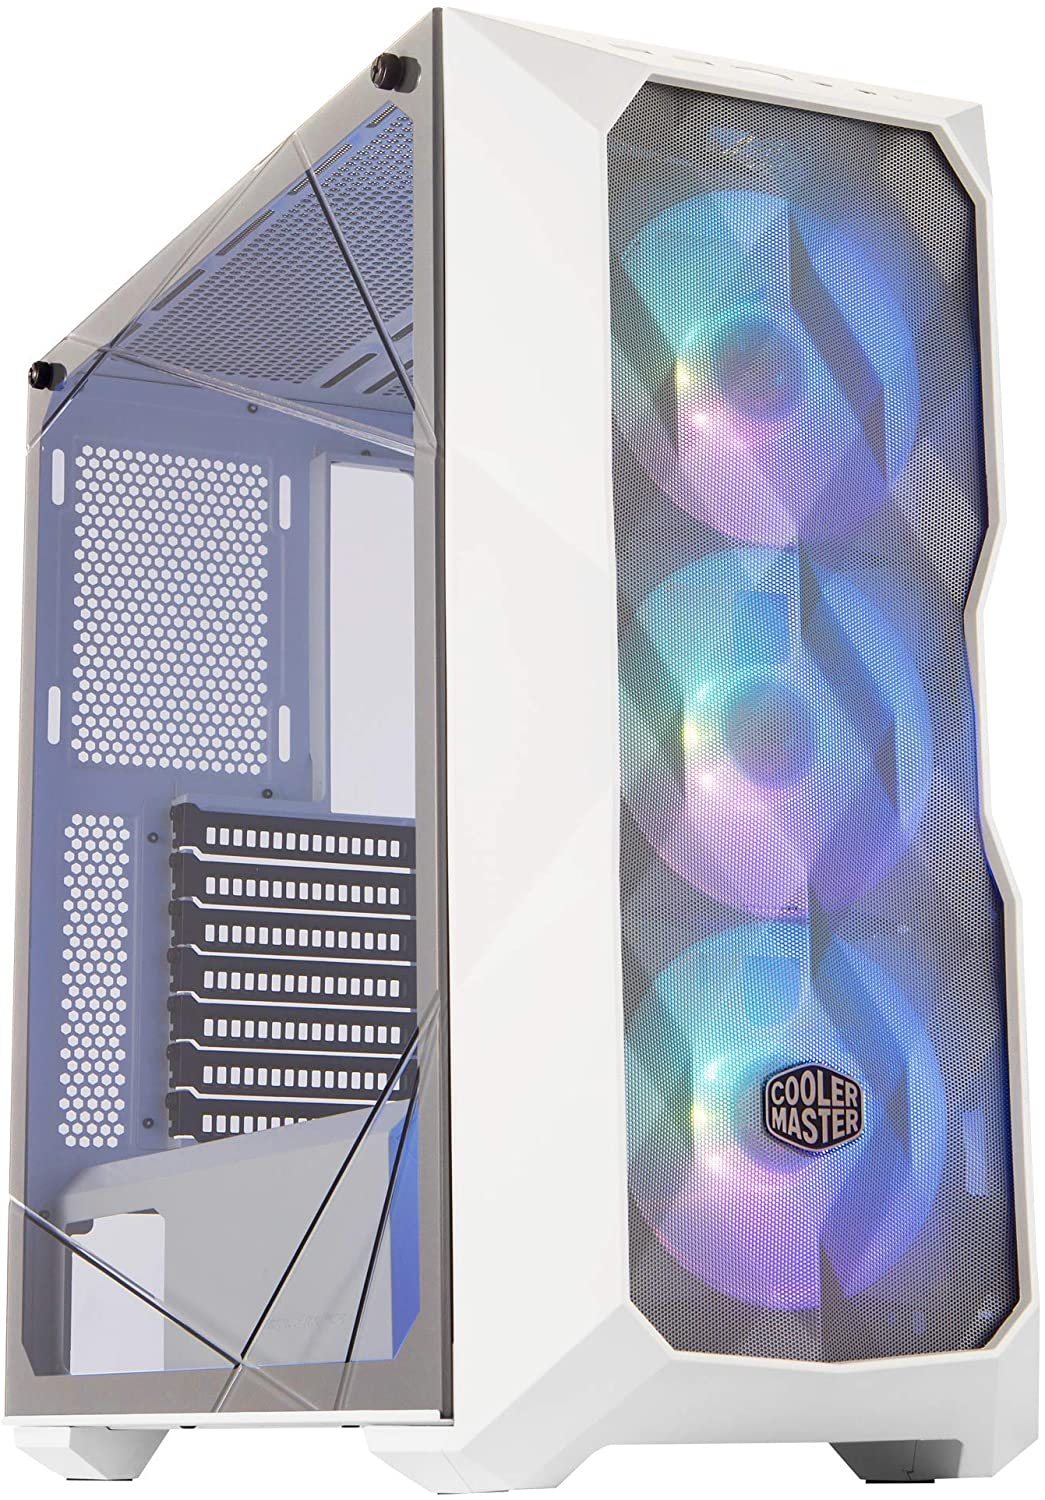 Cooler Master MasterBox TD500 Mesh White Airflow ATX Mid-Tower w/E-ATX Support, Polygonal Mesh Front Panel, Crystalline Tempered Glass & 3 ARGB Fans w/Controller